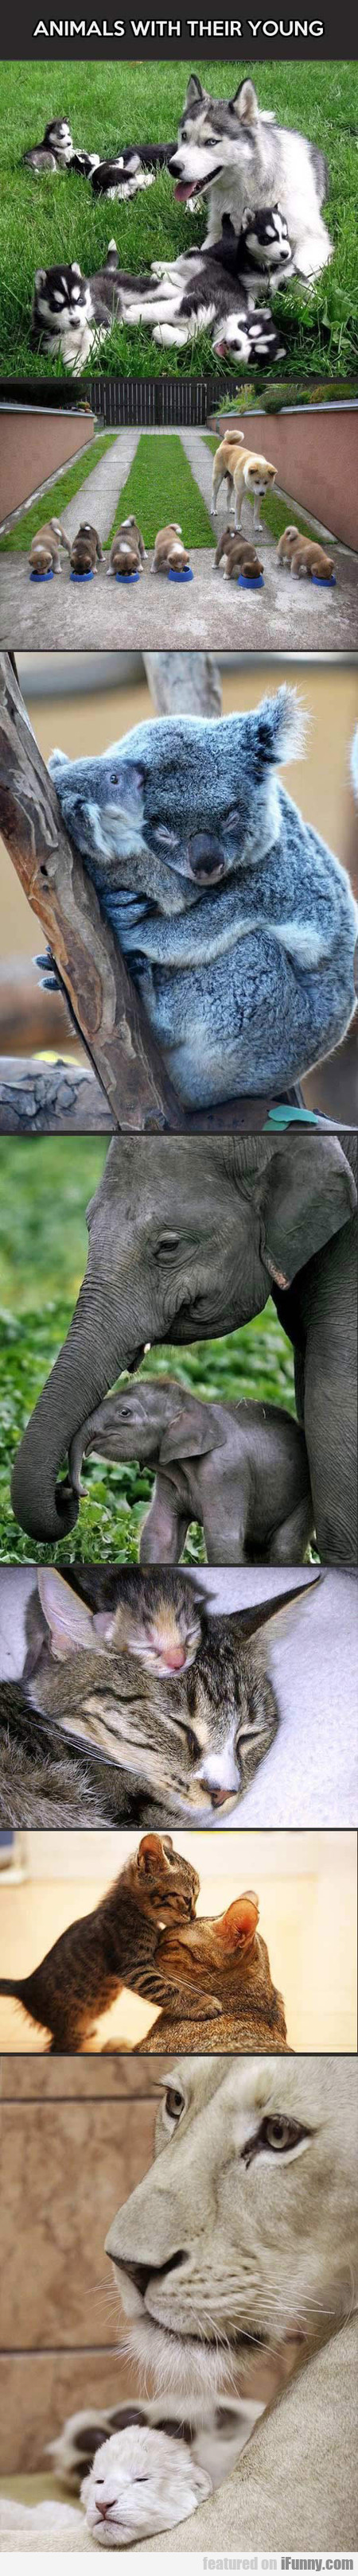 Animals With Their Young